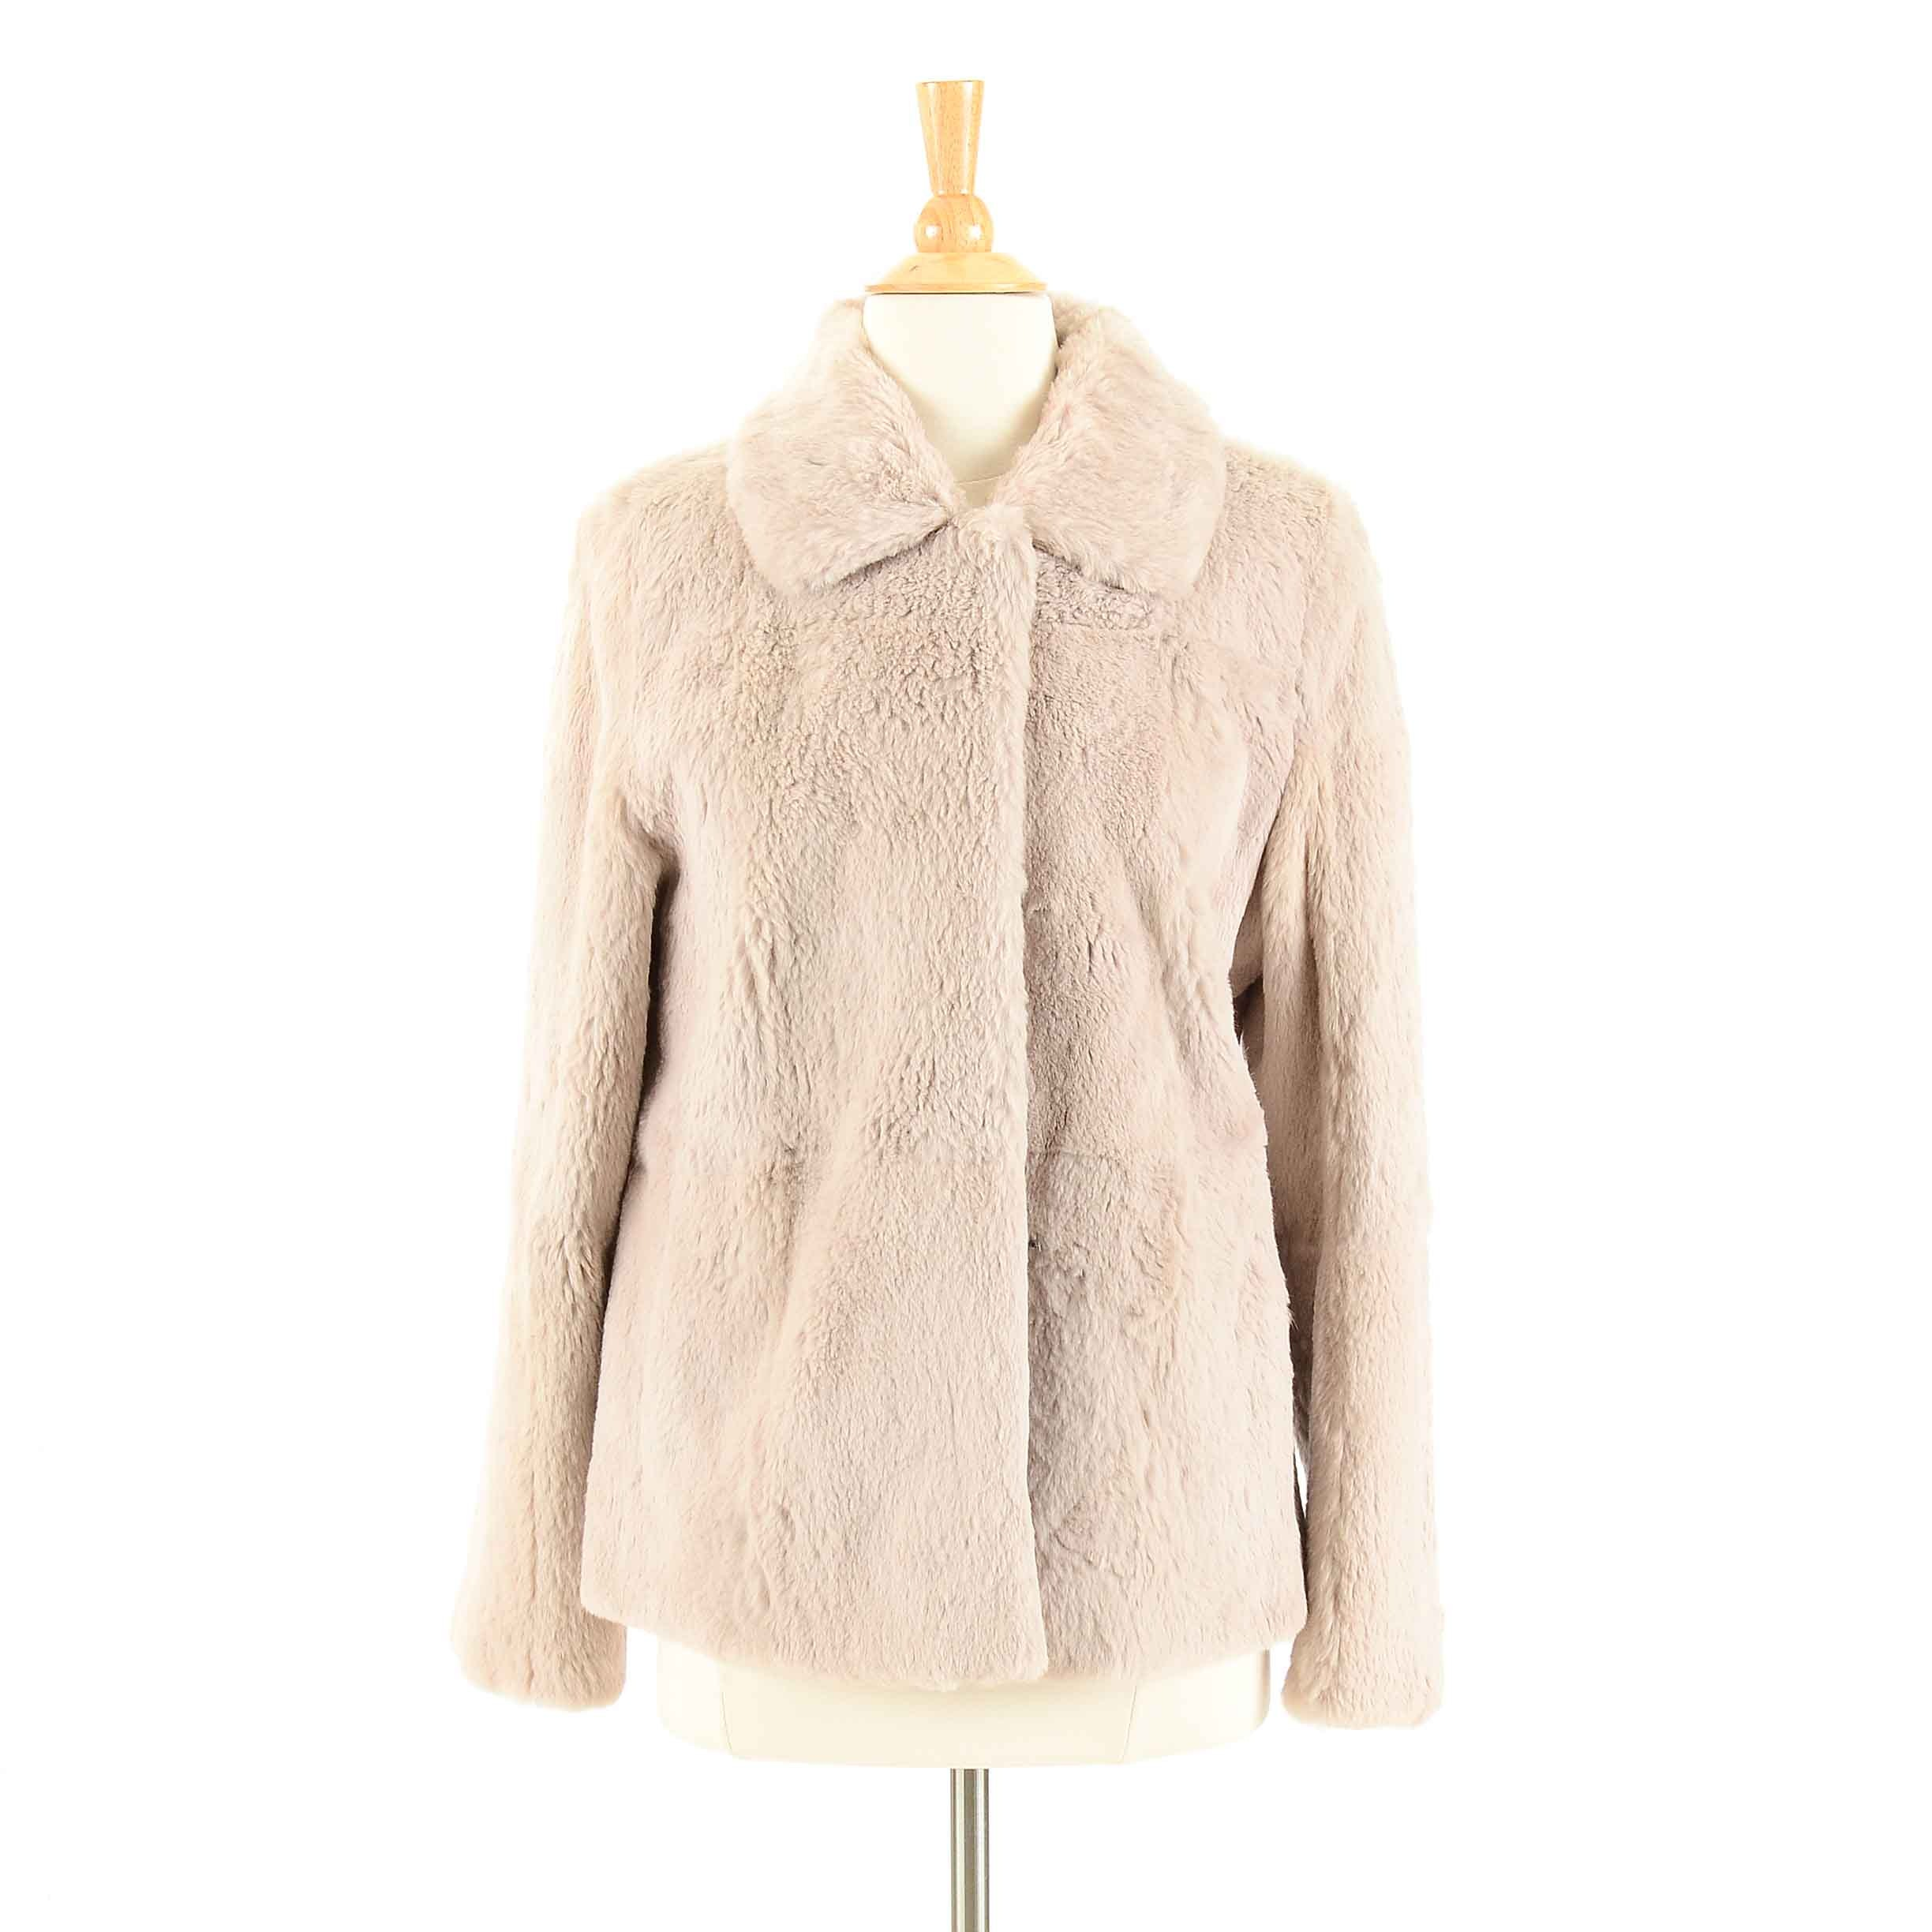 Sheared Rabbit Fur Jacket